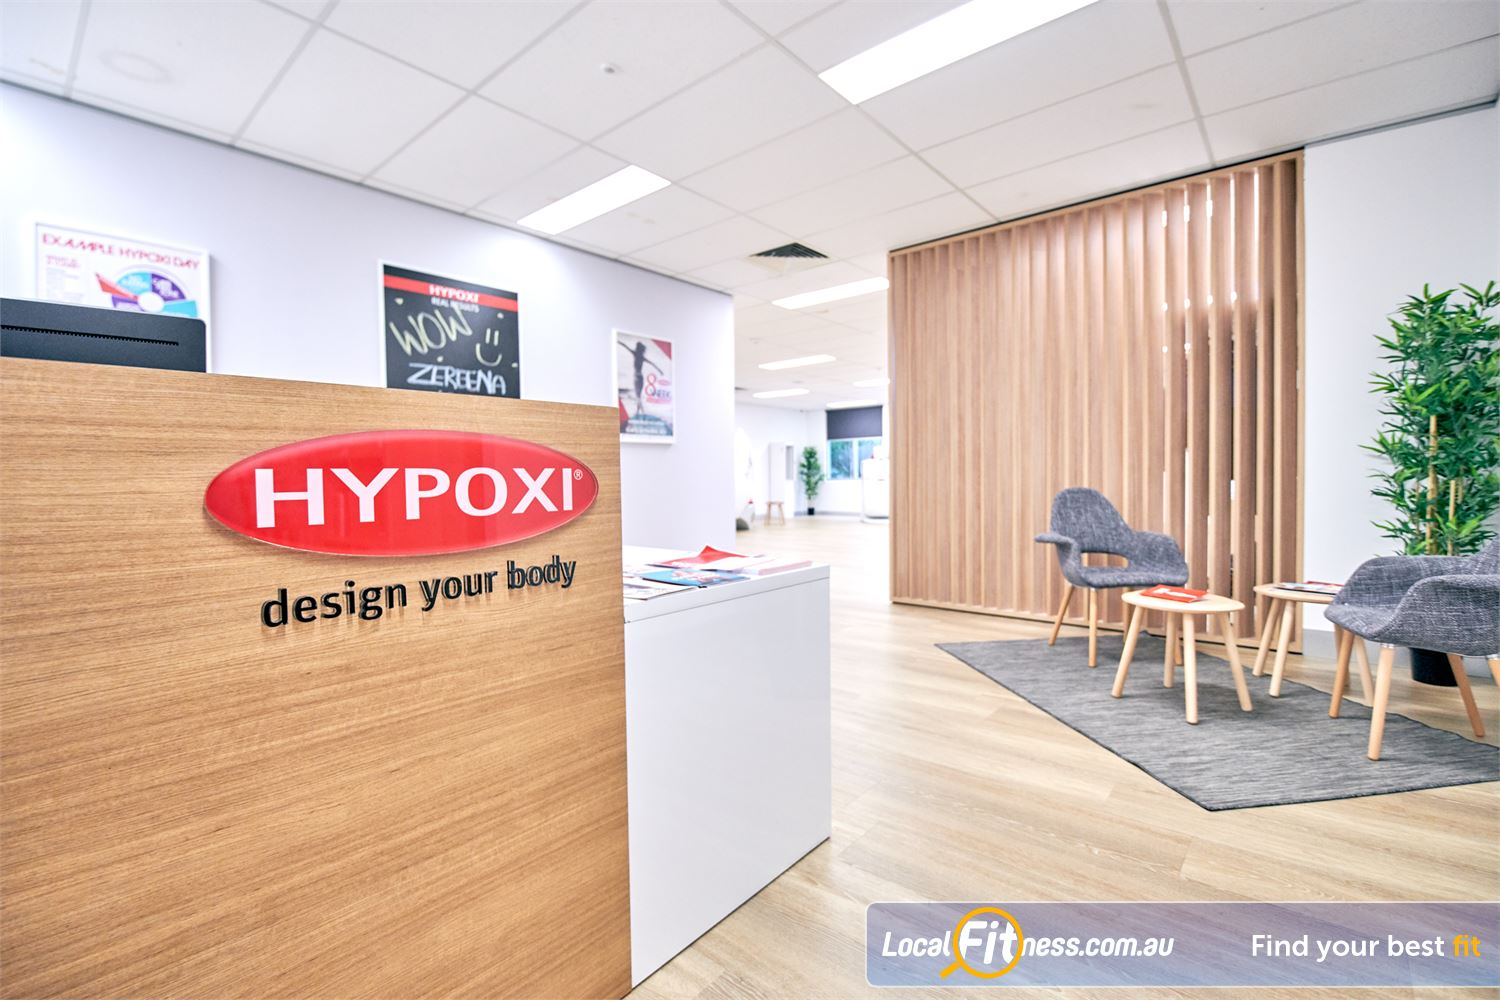 HYPOXI Weight Loss Myaree All it takes is 30 minutes of low-impact exercise in our Myaree weight-loss studio.